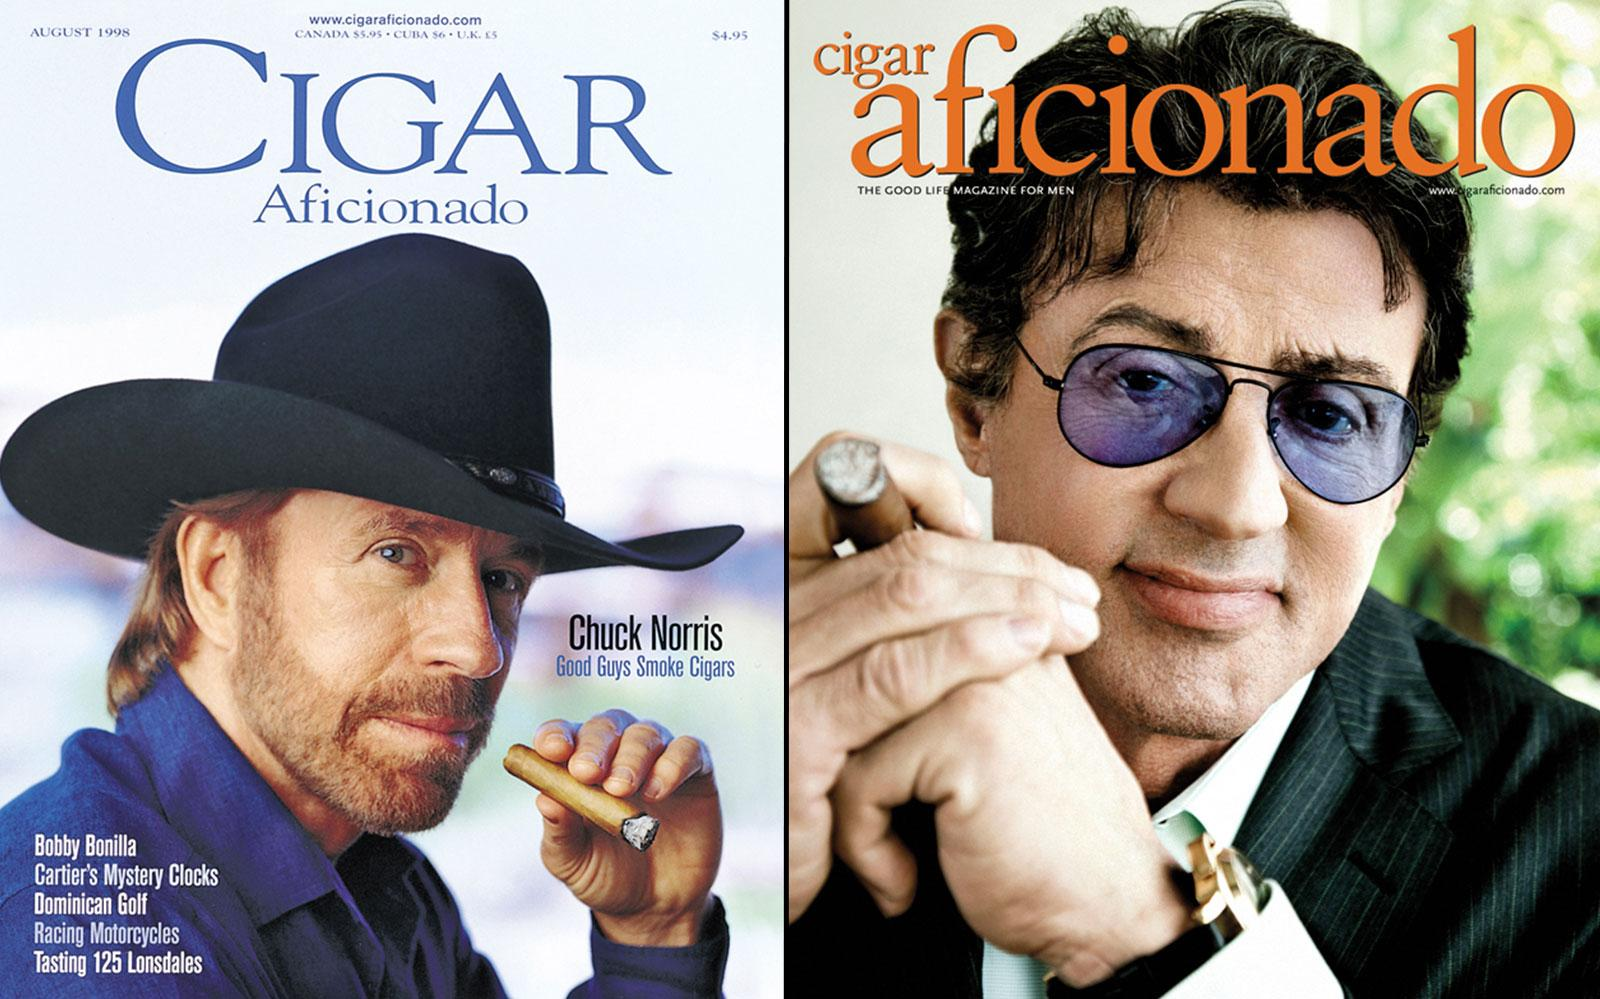 Chuck Norris (August 1998) and Sylvester Stallone (August 2010) will go head-to-head in Round 2.